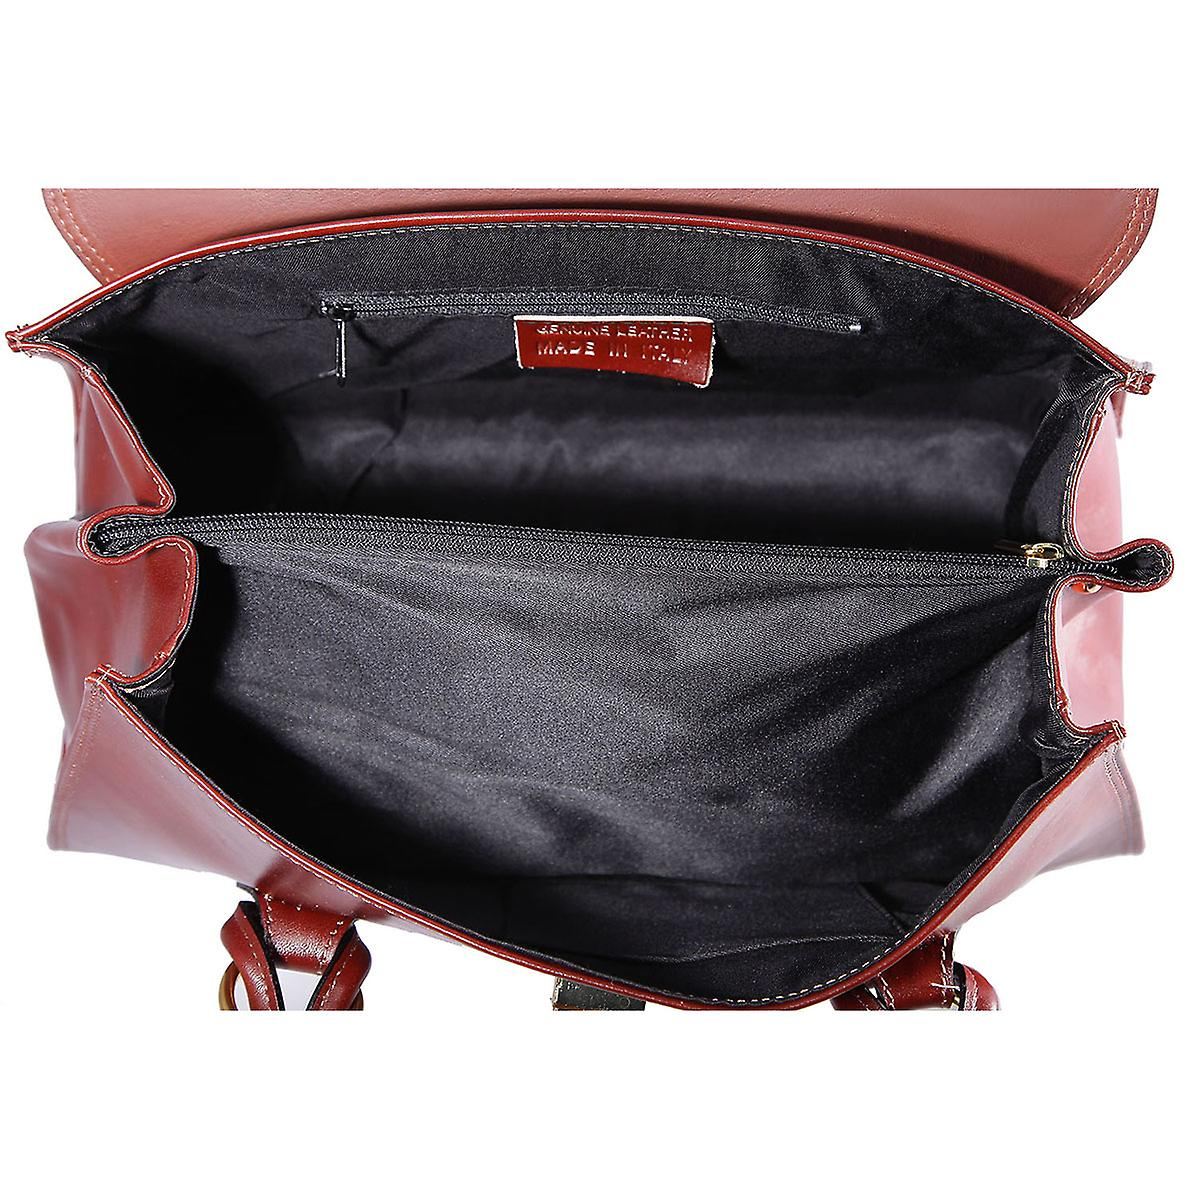 CTM hand bag elegant woman's large genuine leather made in italy